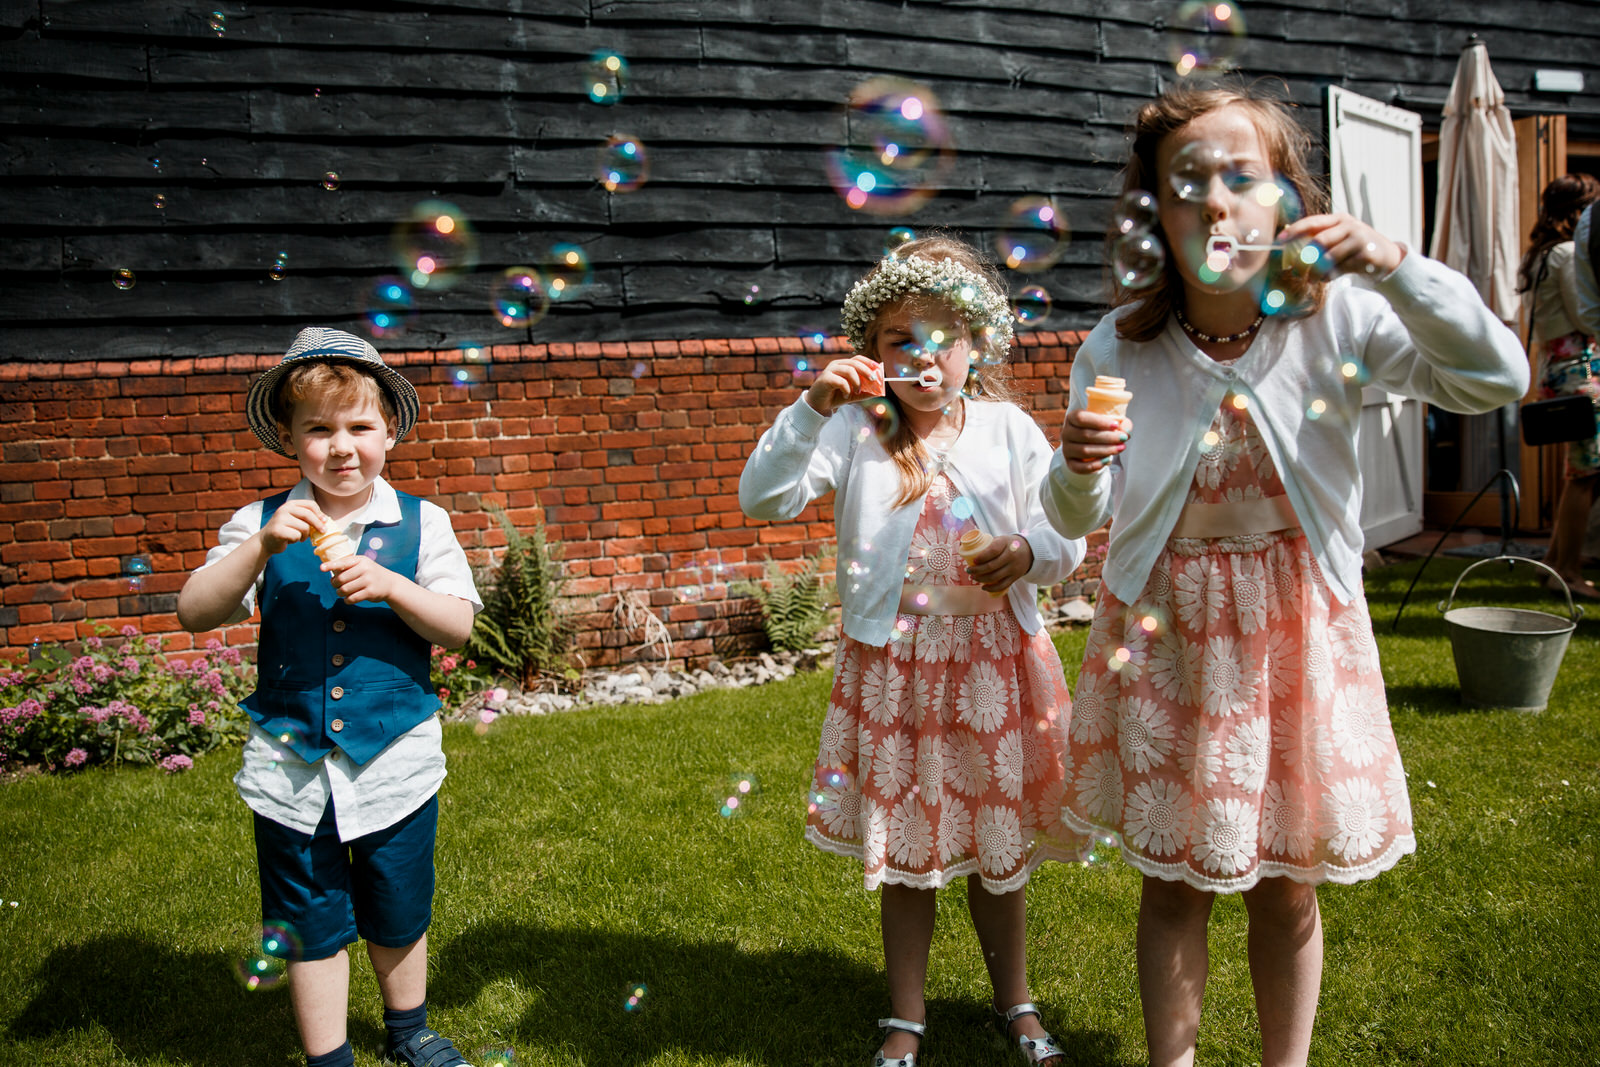 kids playing with bubbles outside lillibrooke manor